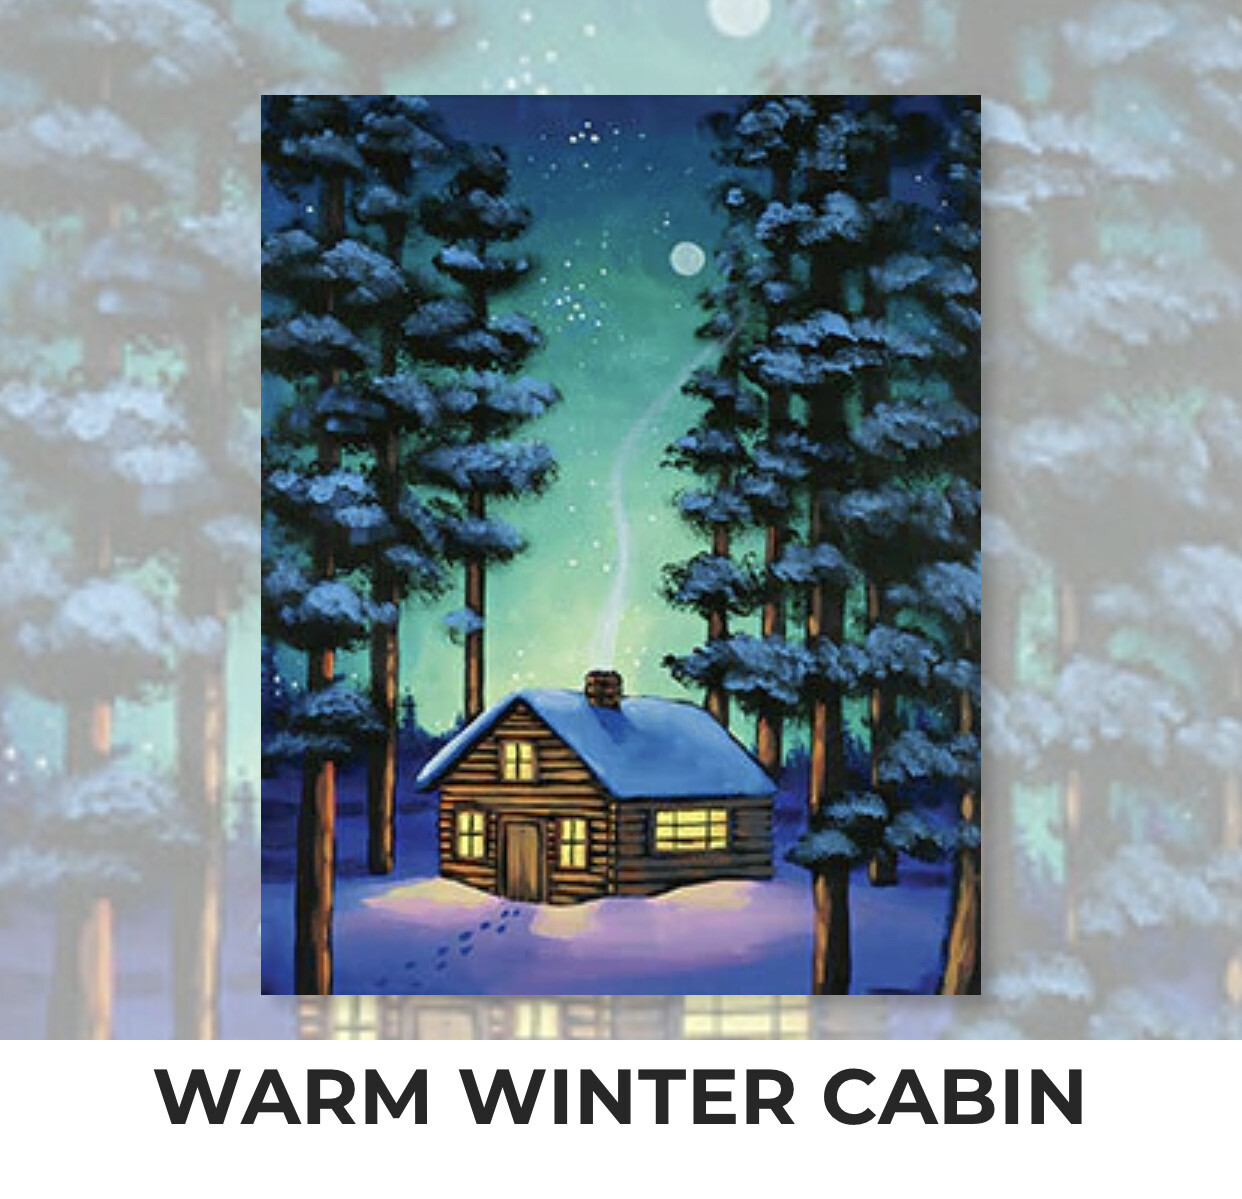 Warm Winter Cabin ADULT Acrylic Paint On Canvas DIY Art Kit - 3 Week Special Order